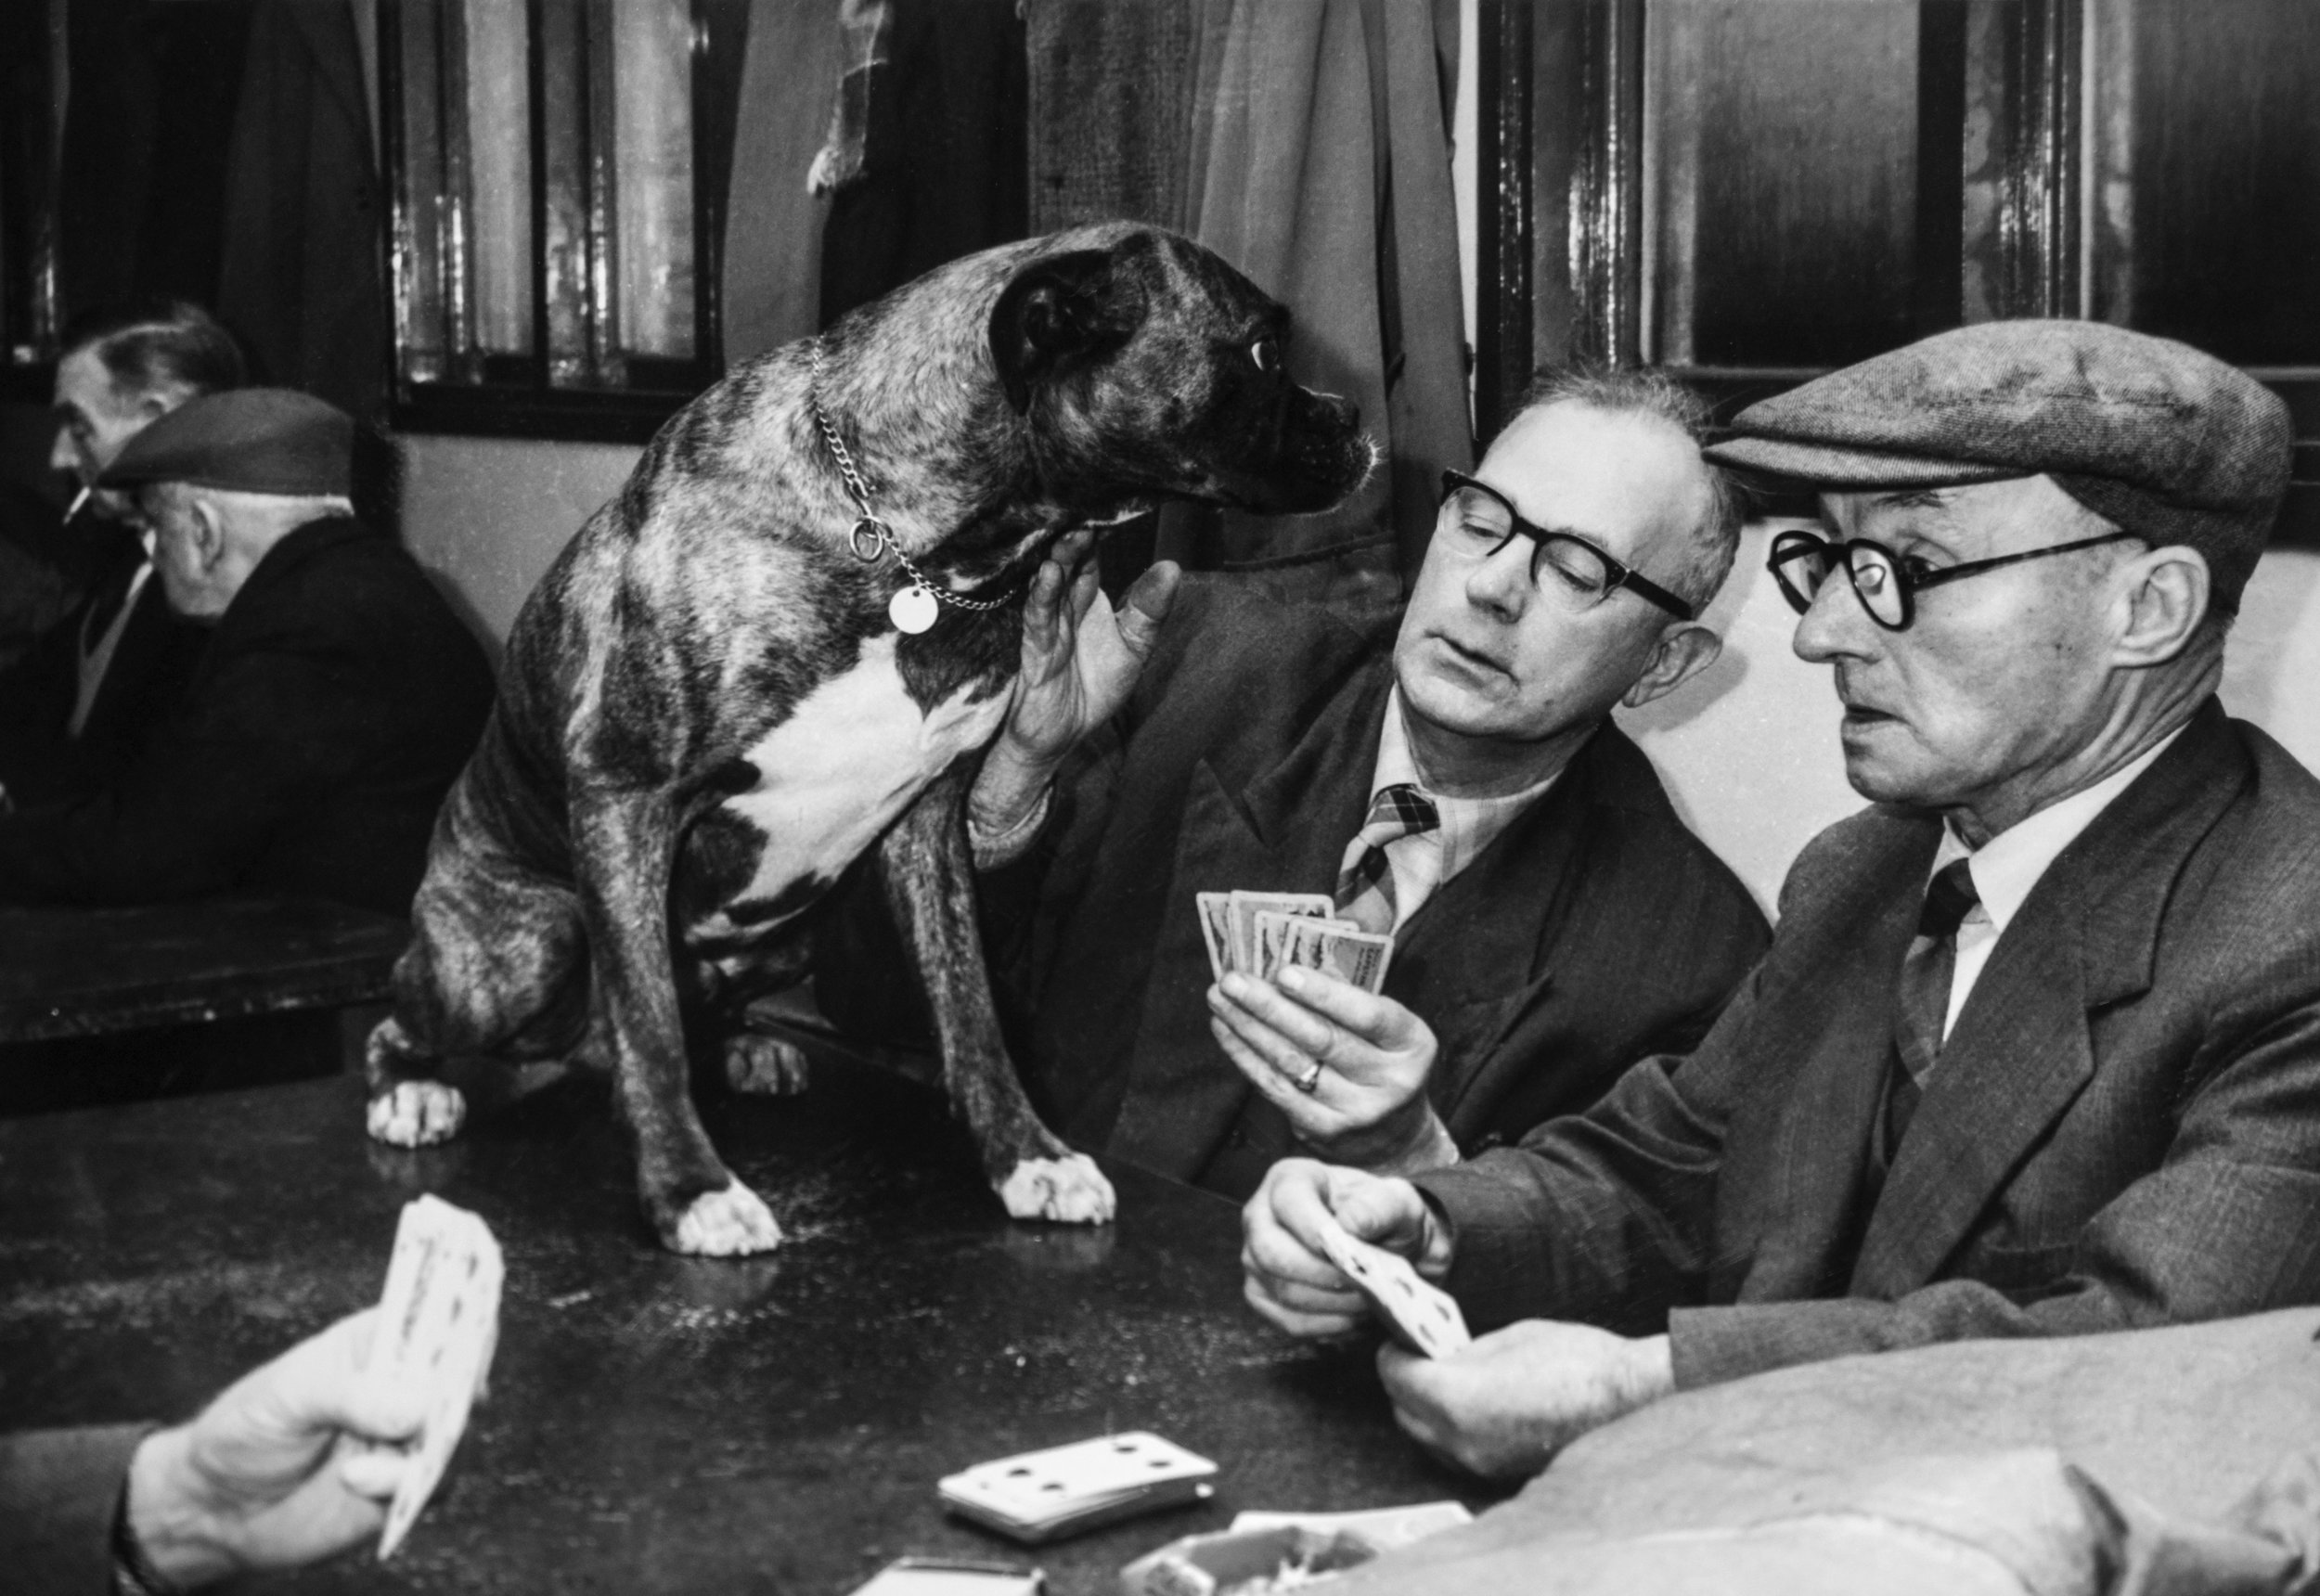 My Grandfather playing cards in the late 1950's with Skipper the dog